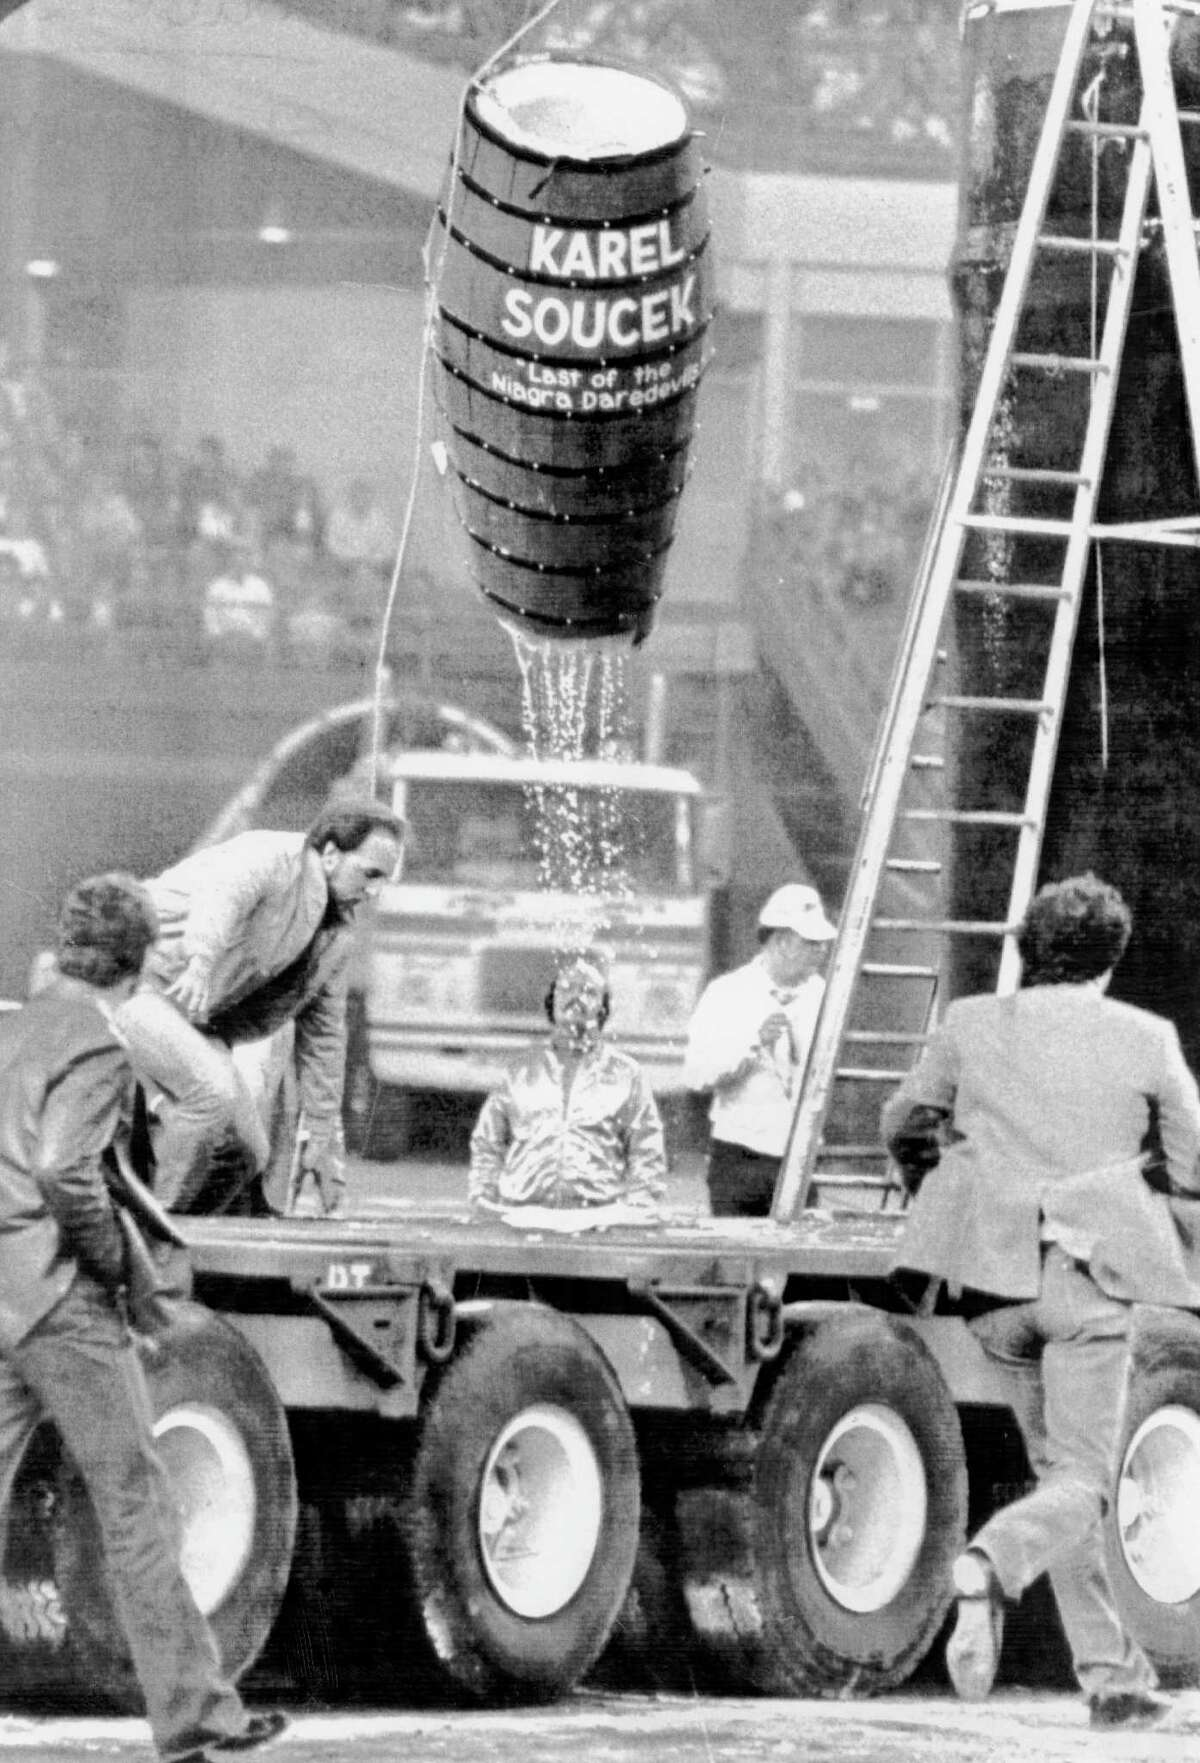 Karel Soucek (1947 - 1985) was a Canadian professional stuntman who developed a shock-absorbent barrel. He died following a demonstration involving the barrel being dropped from the roof of the Houston Astrodome. He was fatally wounded when his barrel hit the rim of the water tank meant to cushion his fall.